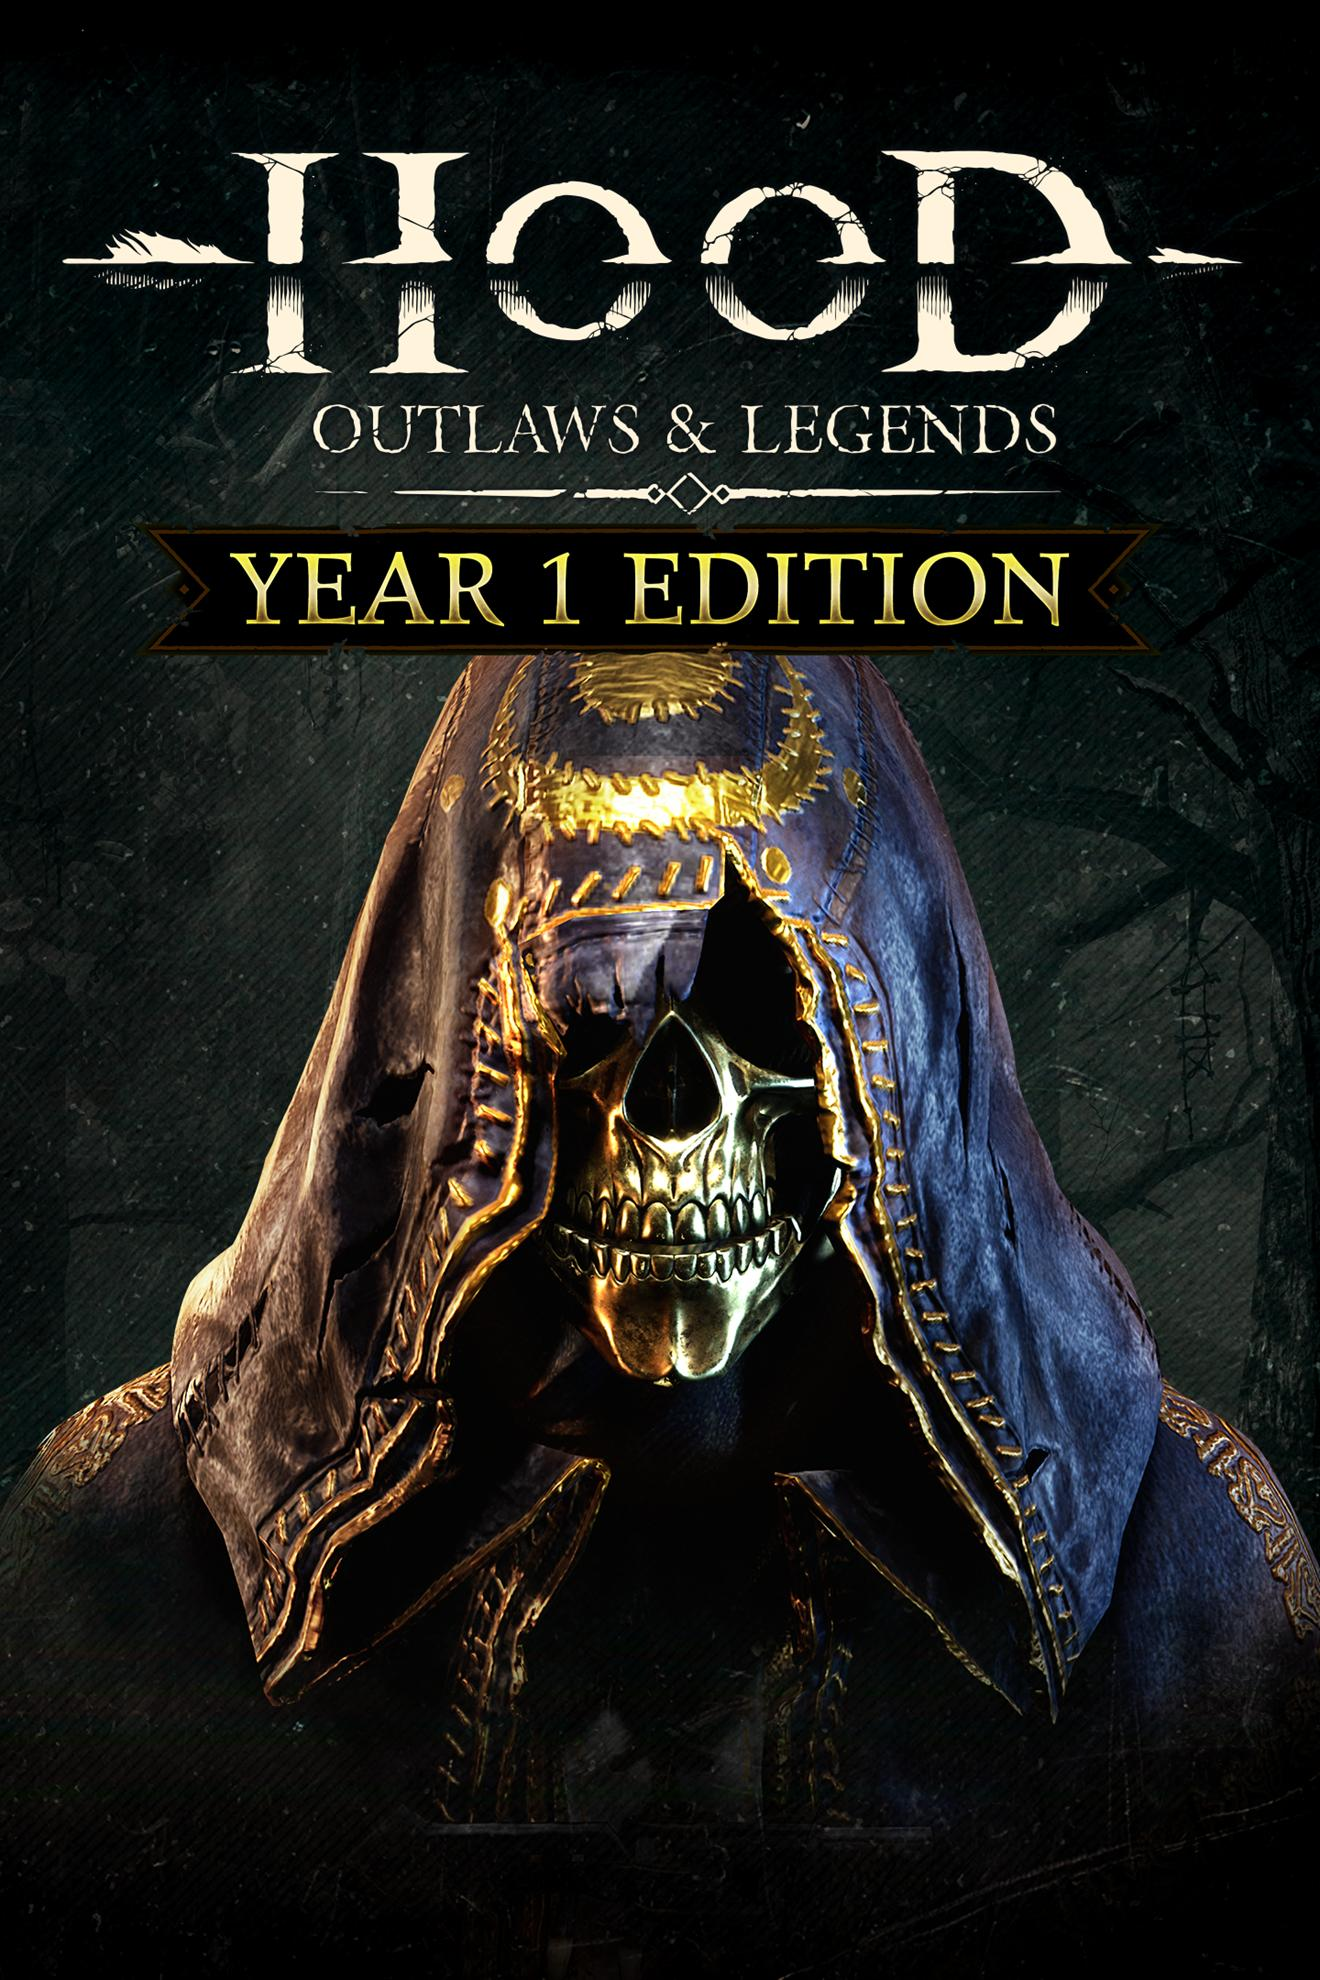 Hood: Outlaws & Legends - Year 1 Edition | WW (5703c61f-b7f5-4fdb-bb04-bc250343feb8)